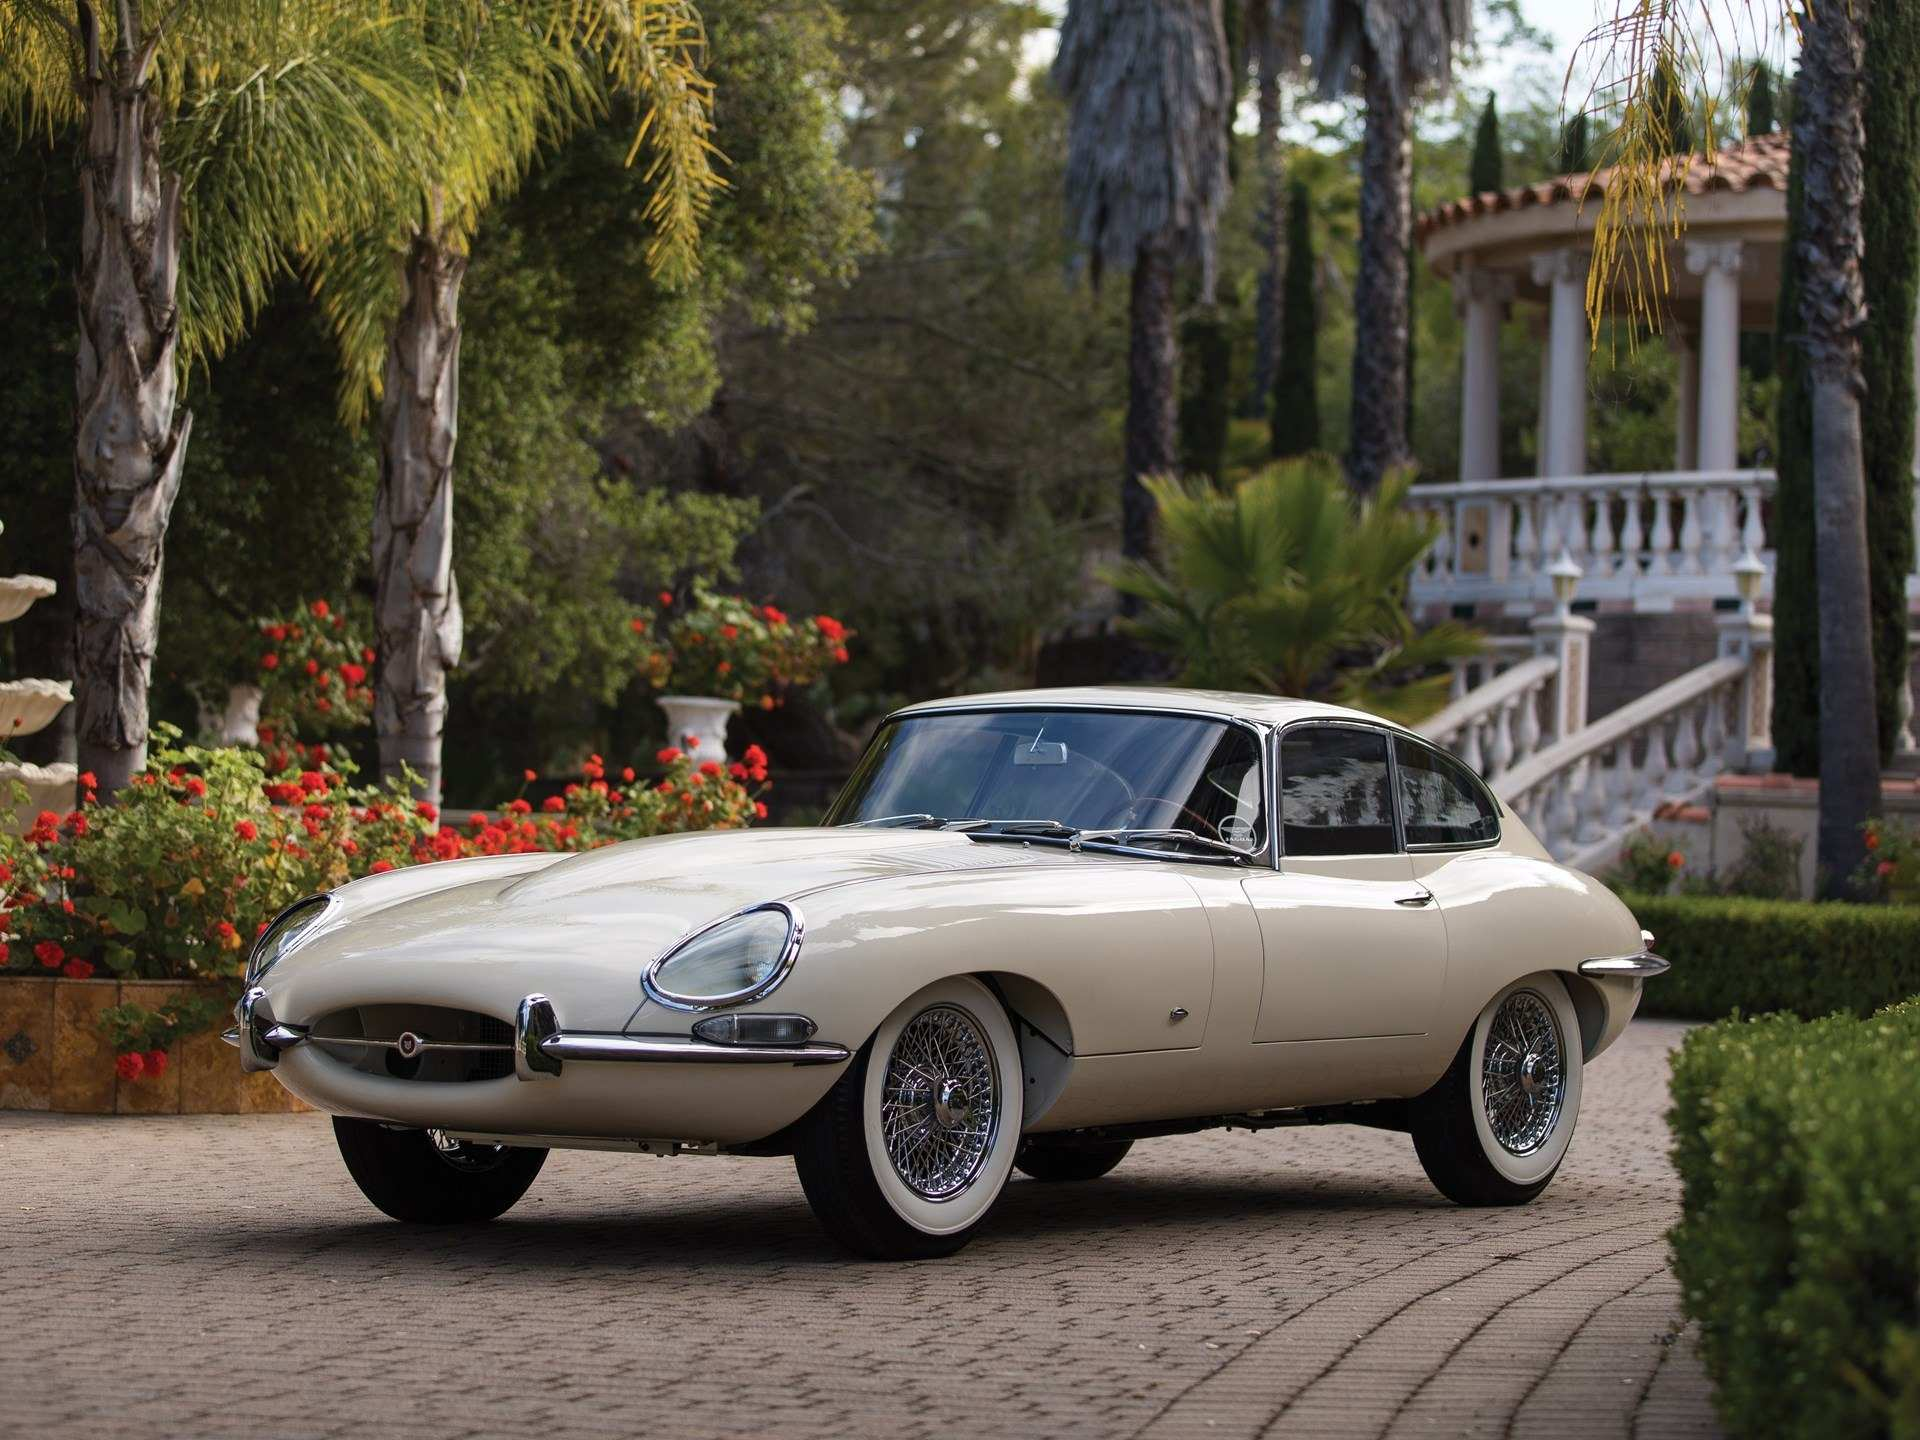 80 Concept of New Jaguar E Type 2019 Spy Shoot Release Date by New Jaguar E Type 2019 Spy Shoot